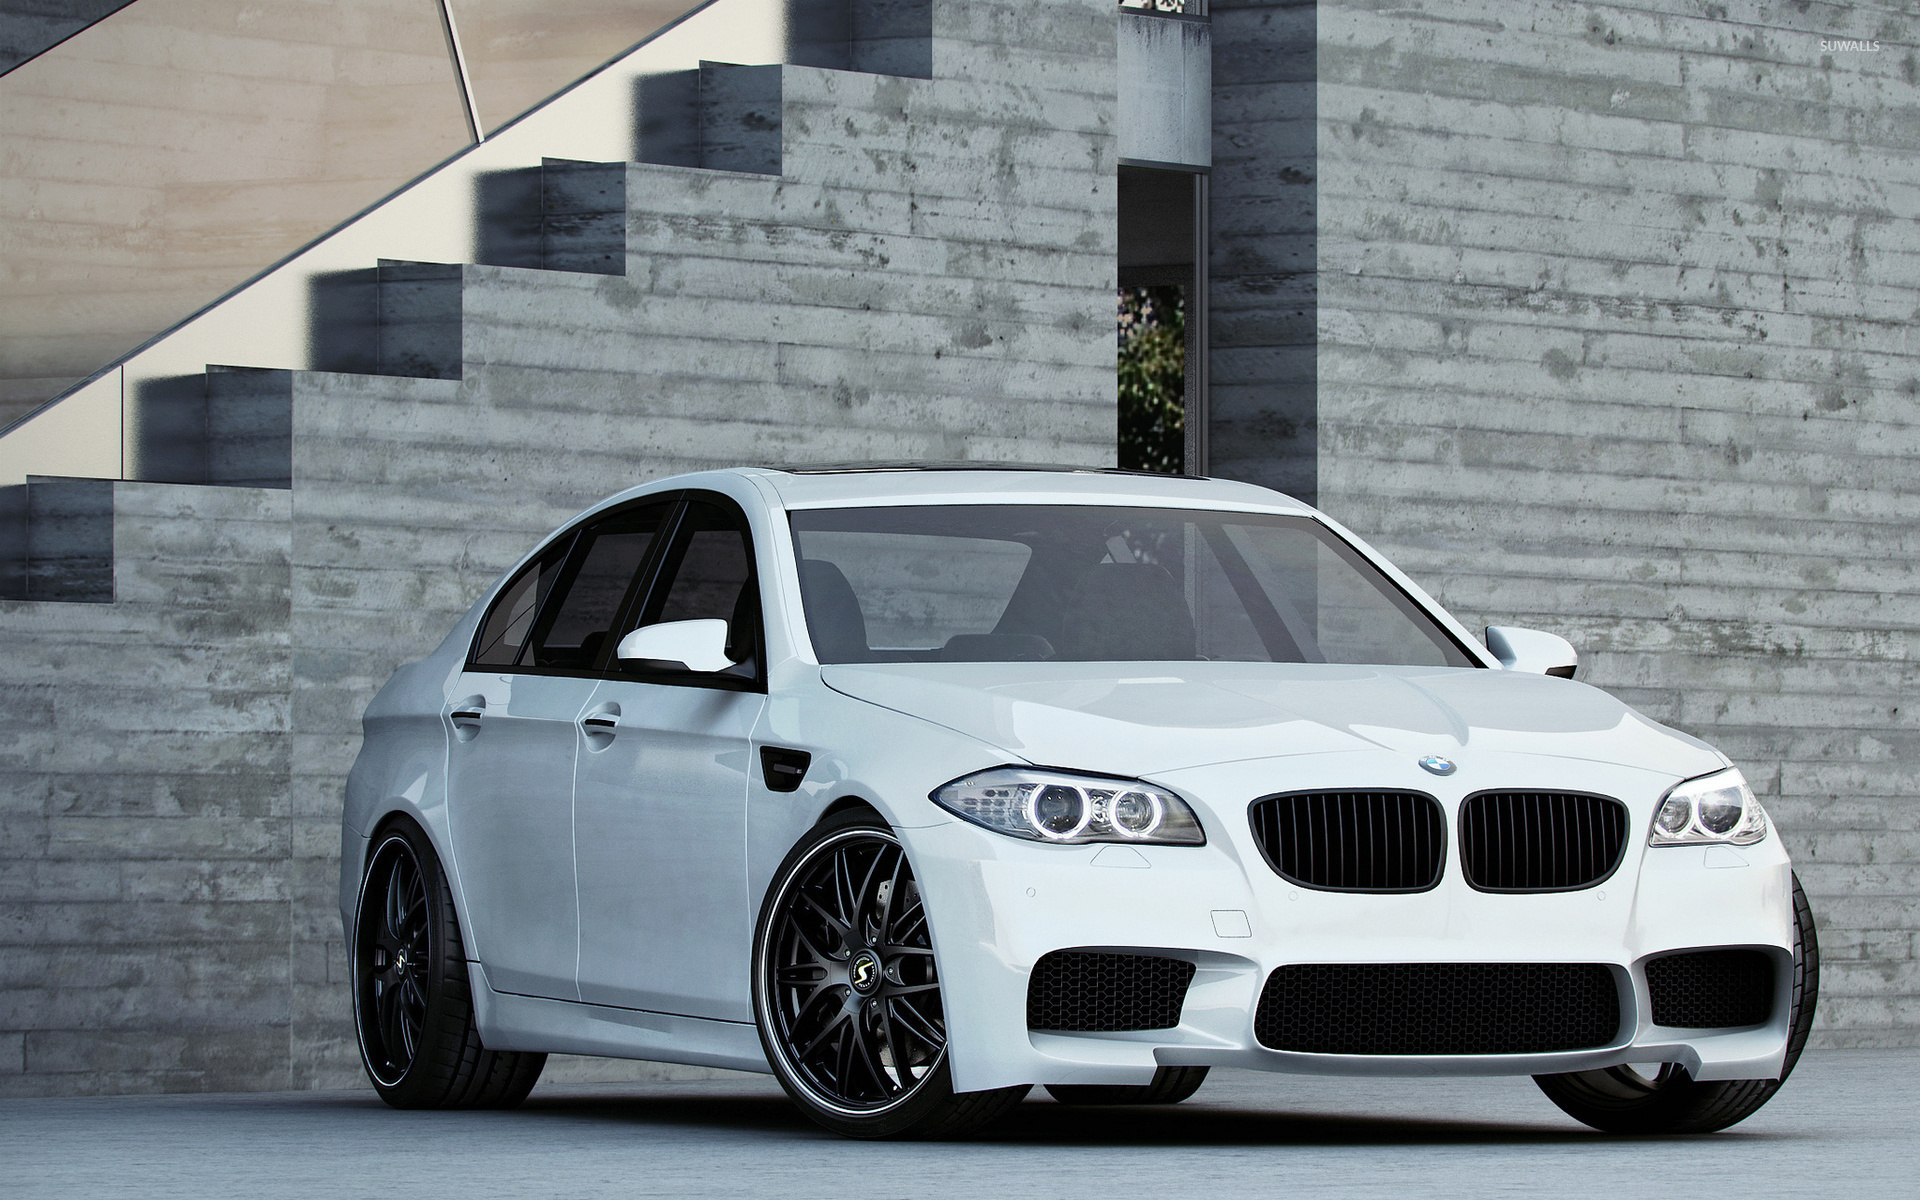 White BMW M5 Front Side View Wallpaper Car Wallpapers